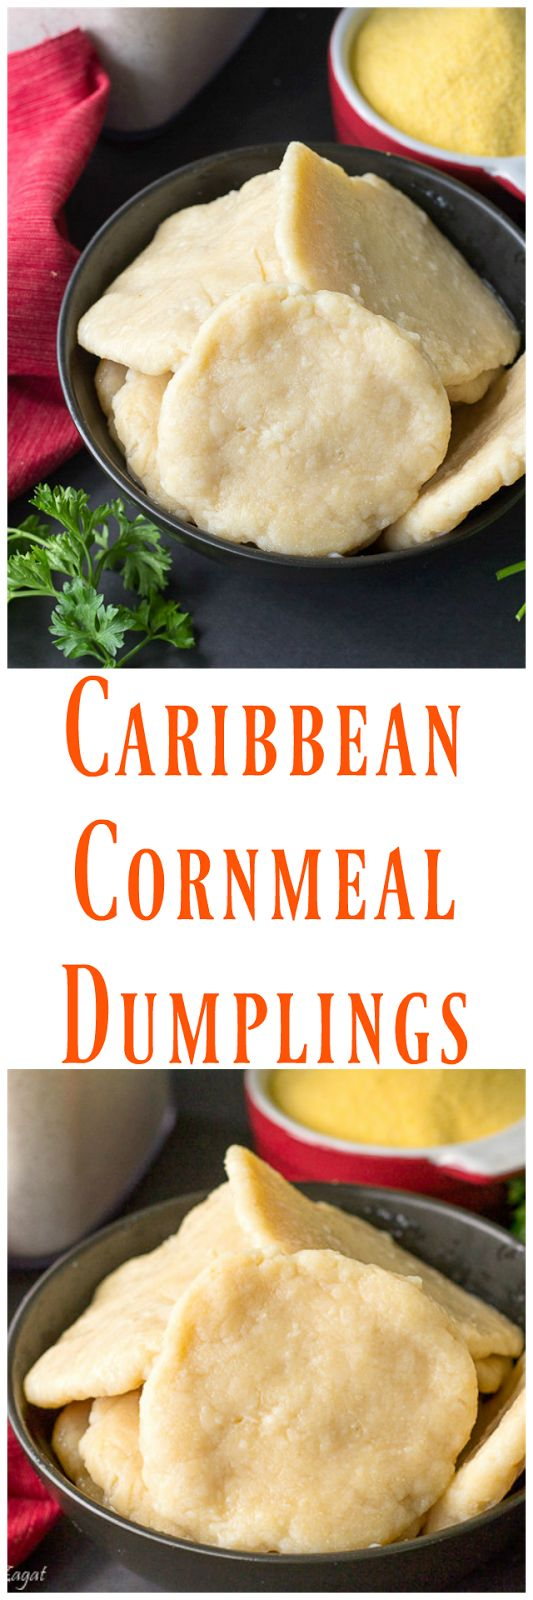 This is a simple recipe for making cornmeal dumplings (boiled) as it is traditionally done in the Caribbean